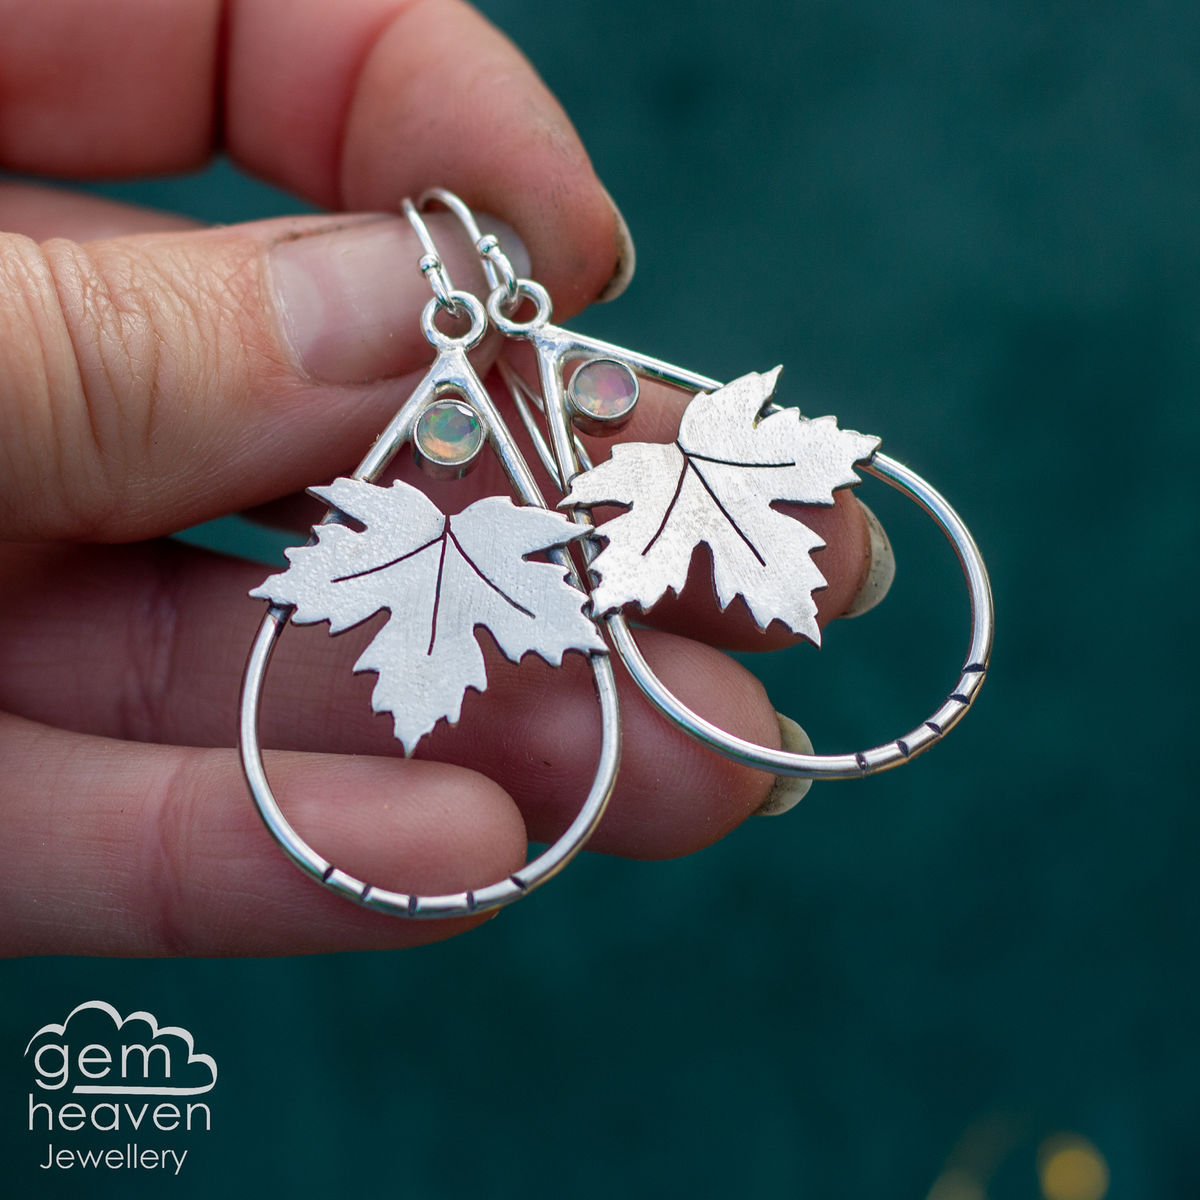 Clarity Earrings with Sycamore leaves - product image